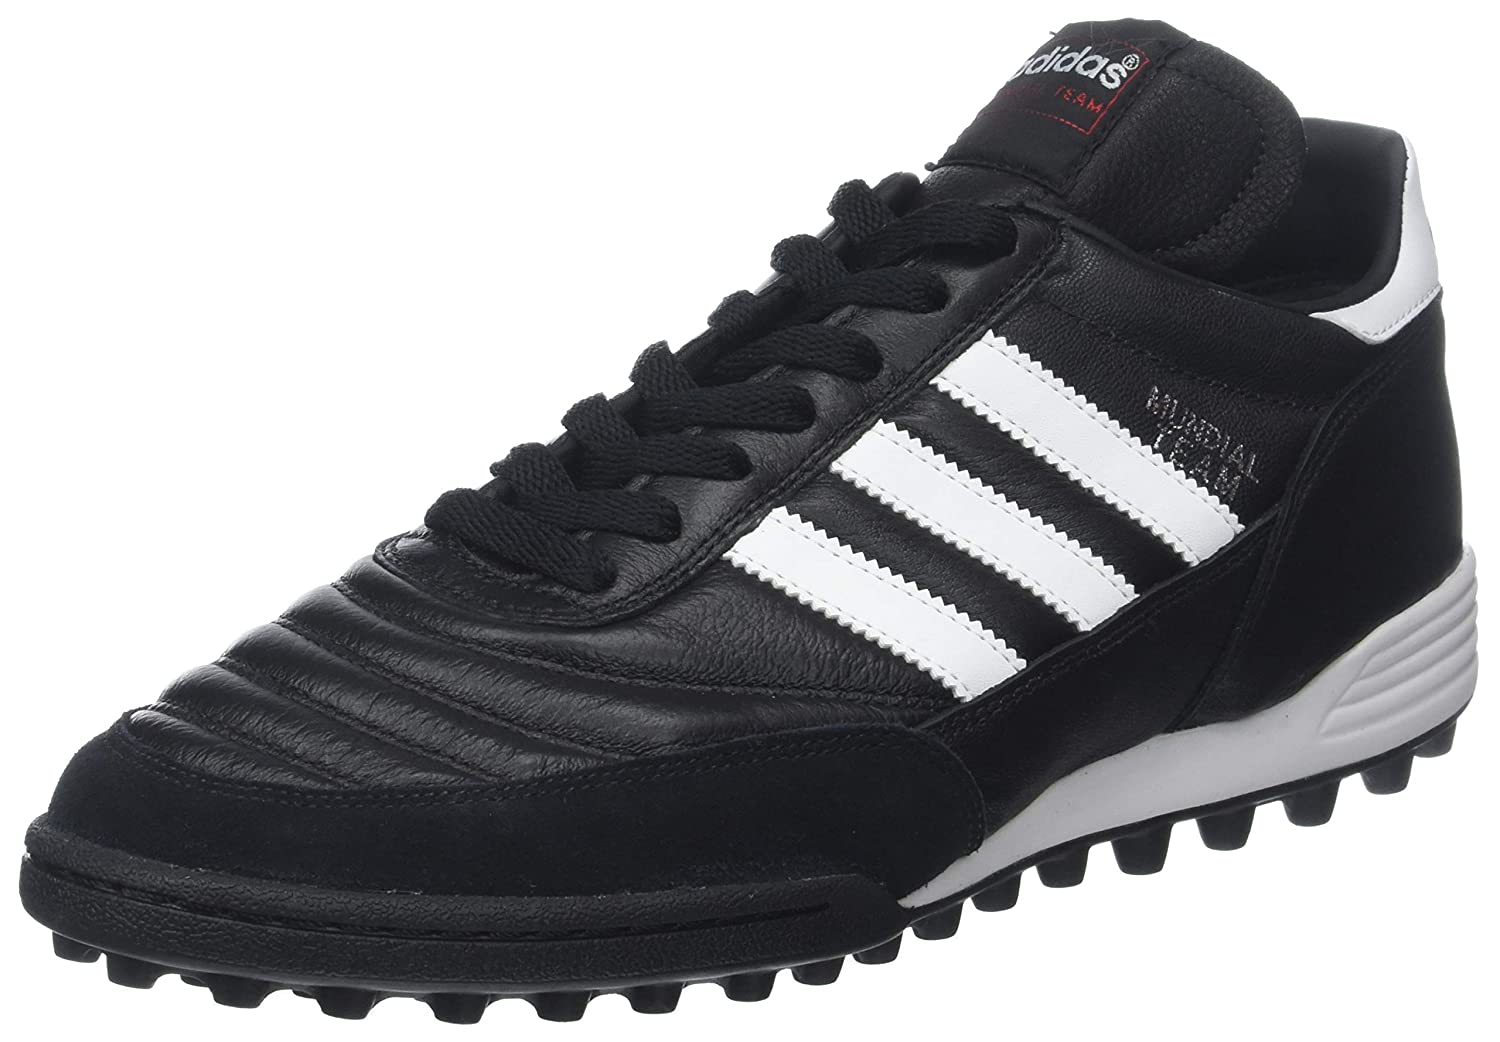 Mixte Football Mundial TeamChaussures De Adidas Adulte kXZuiP